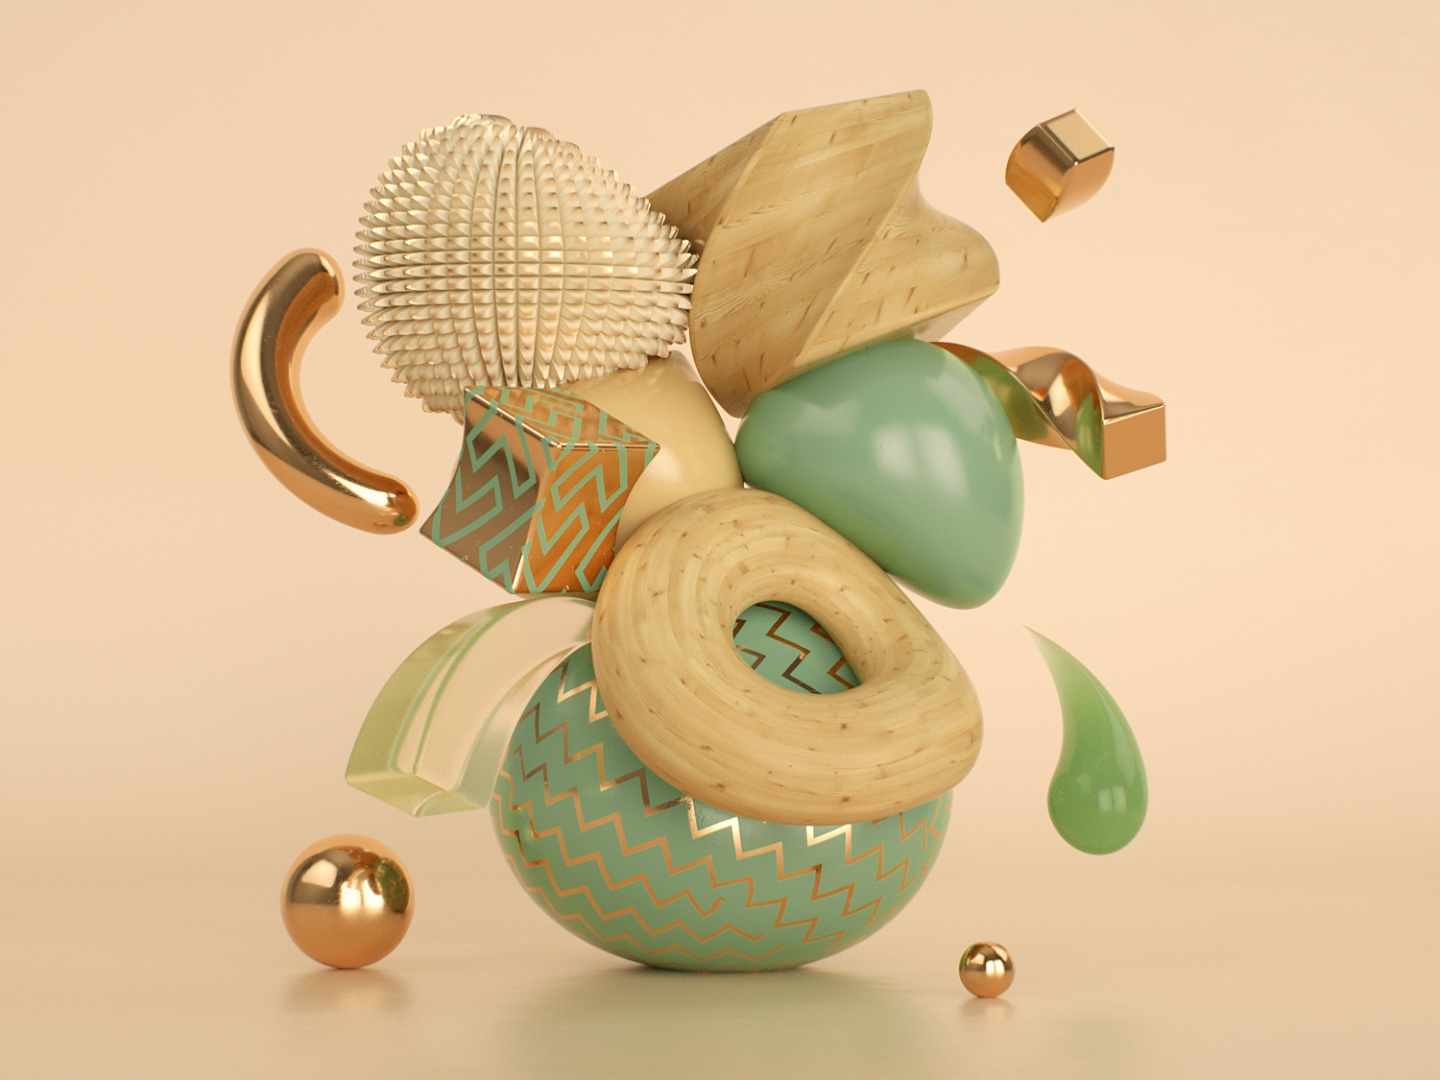 C4D Abstract Art with Deformers - Cinema 4D Tutorial by CG